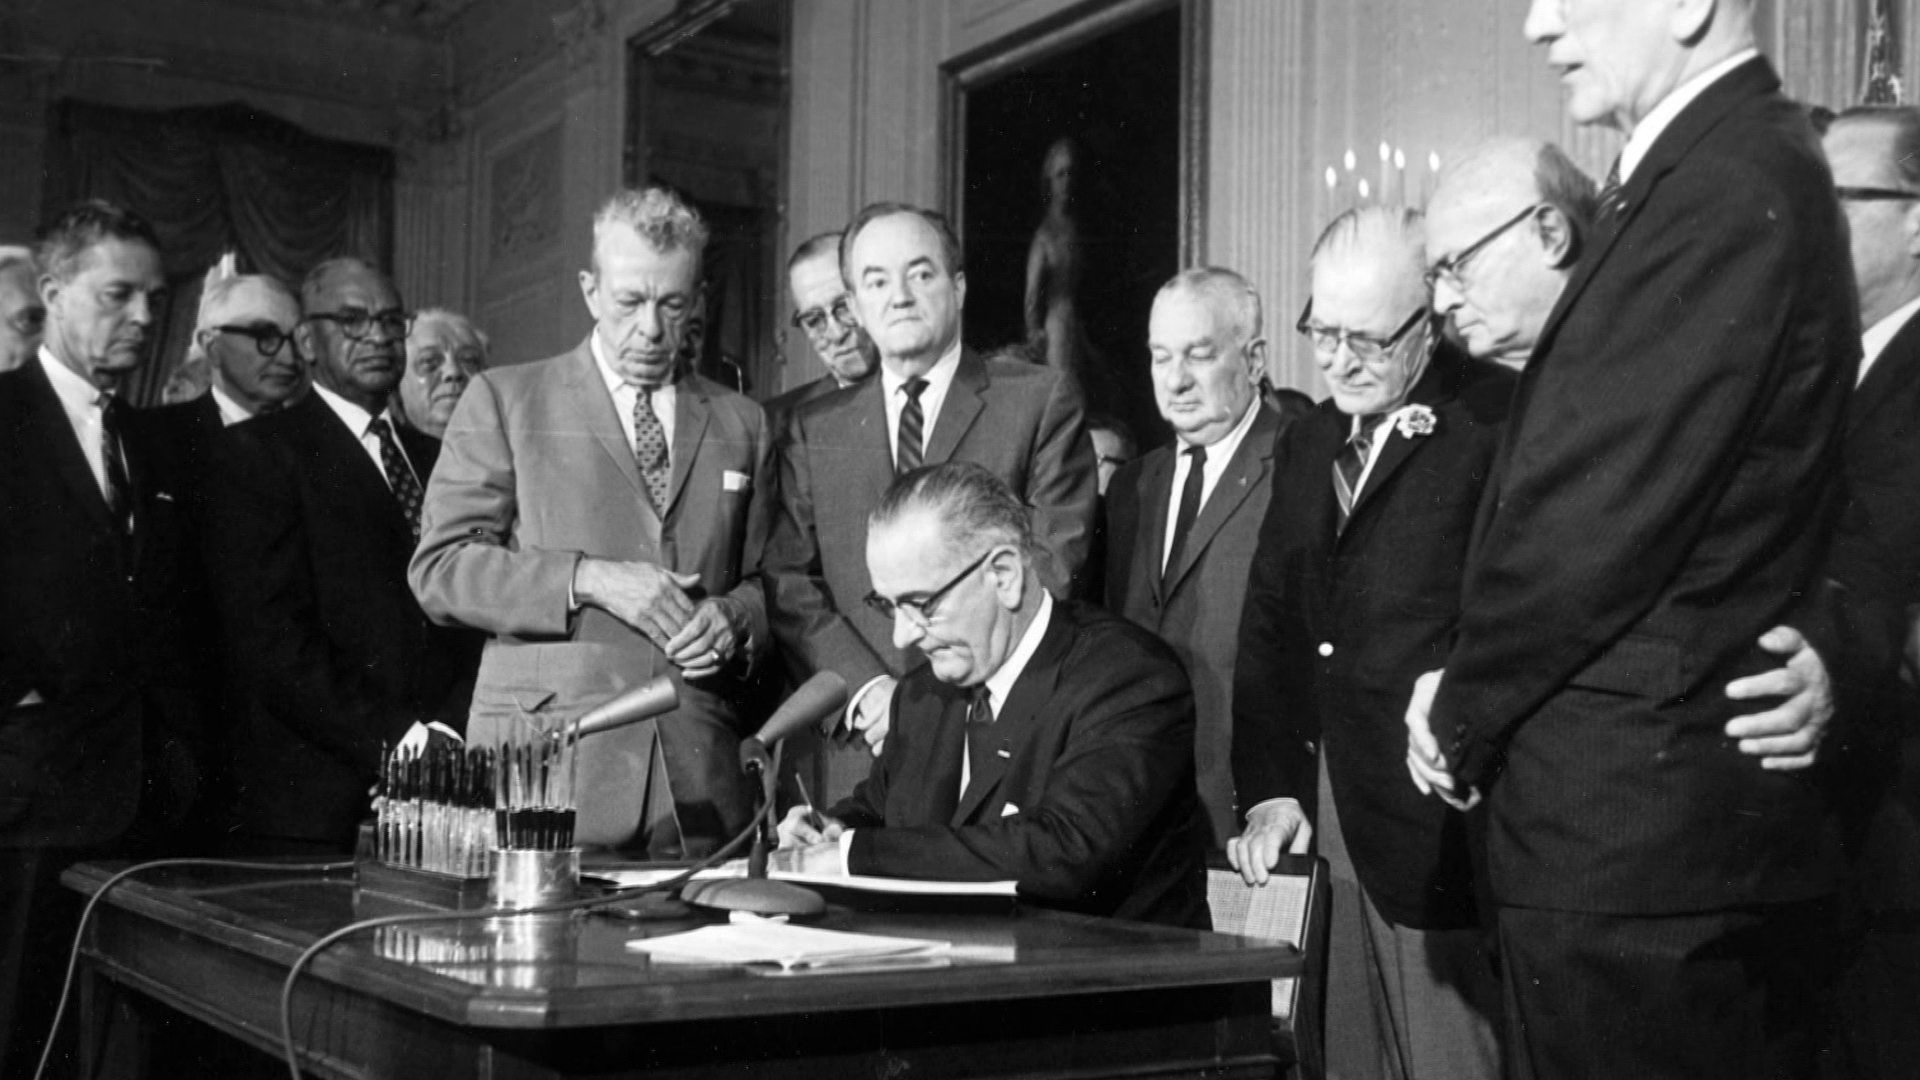 Looking back at LBJ's progressive policies